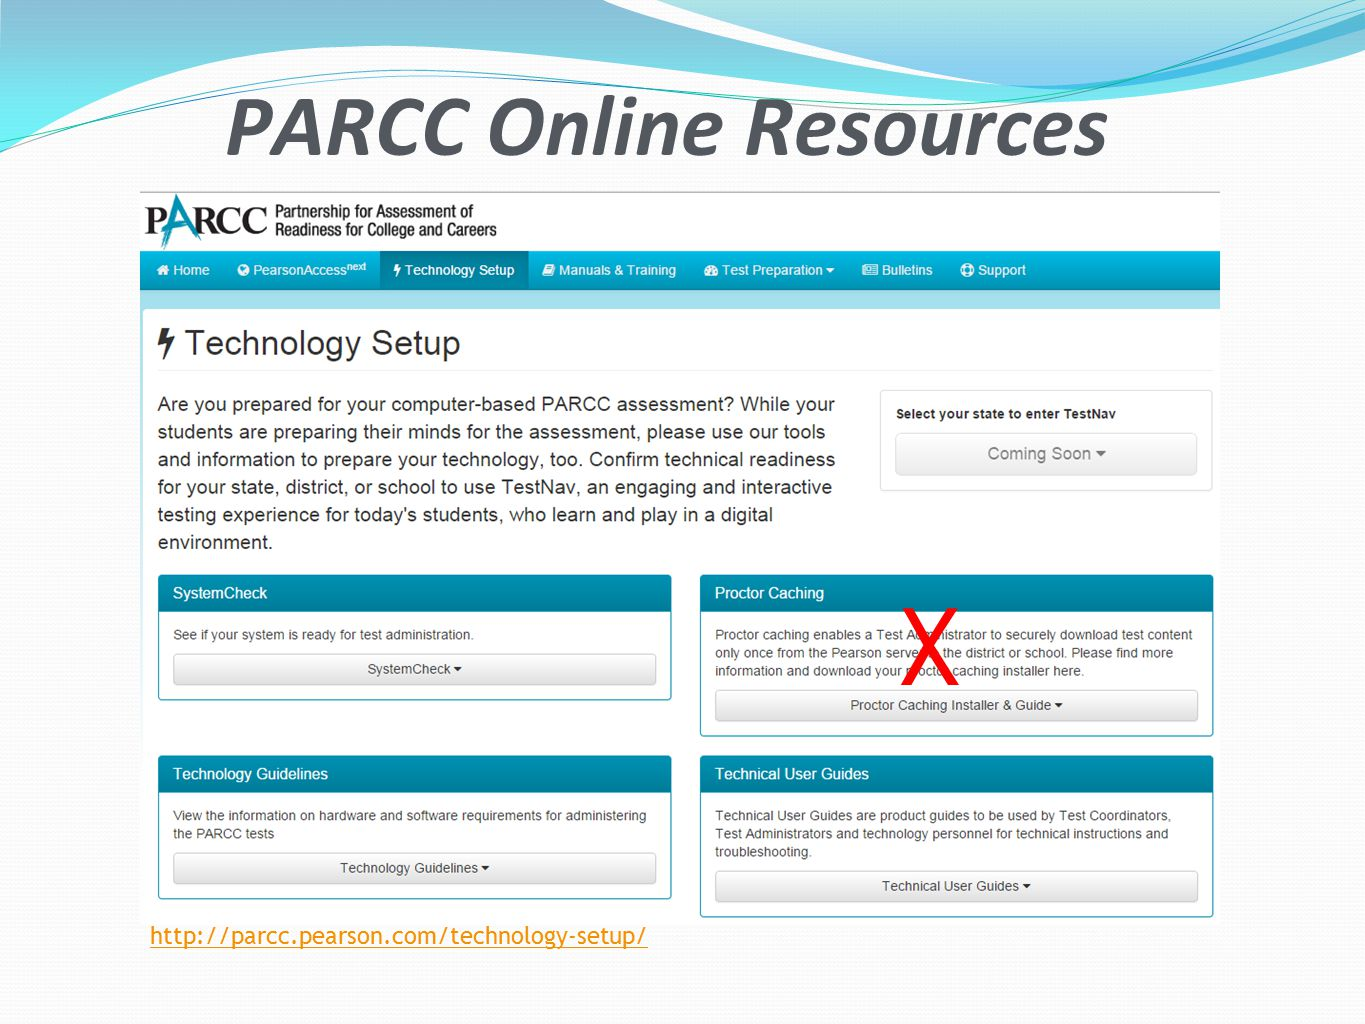 PARCC Online Resources http://parcc.pearson.com/technology-setup/ X